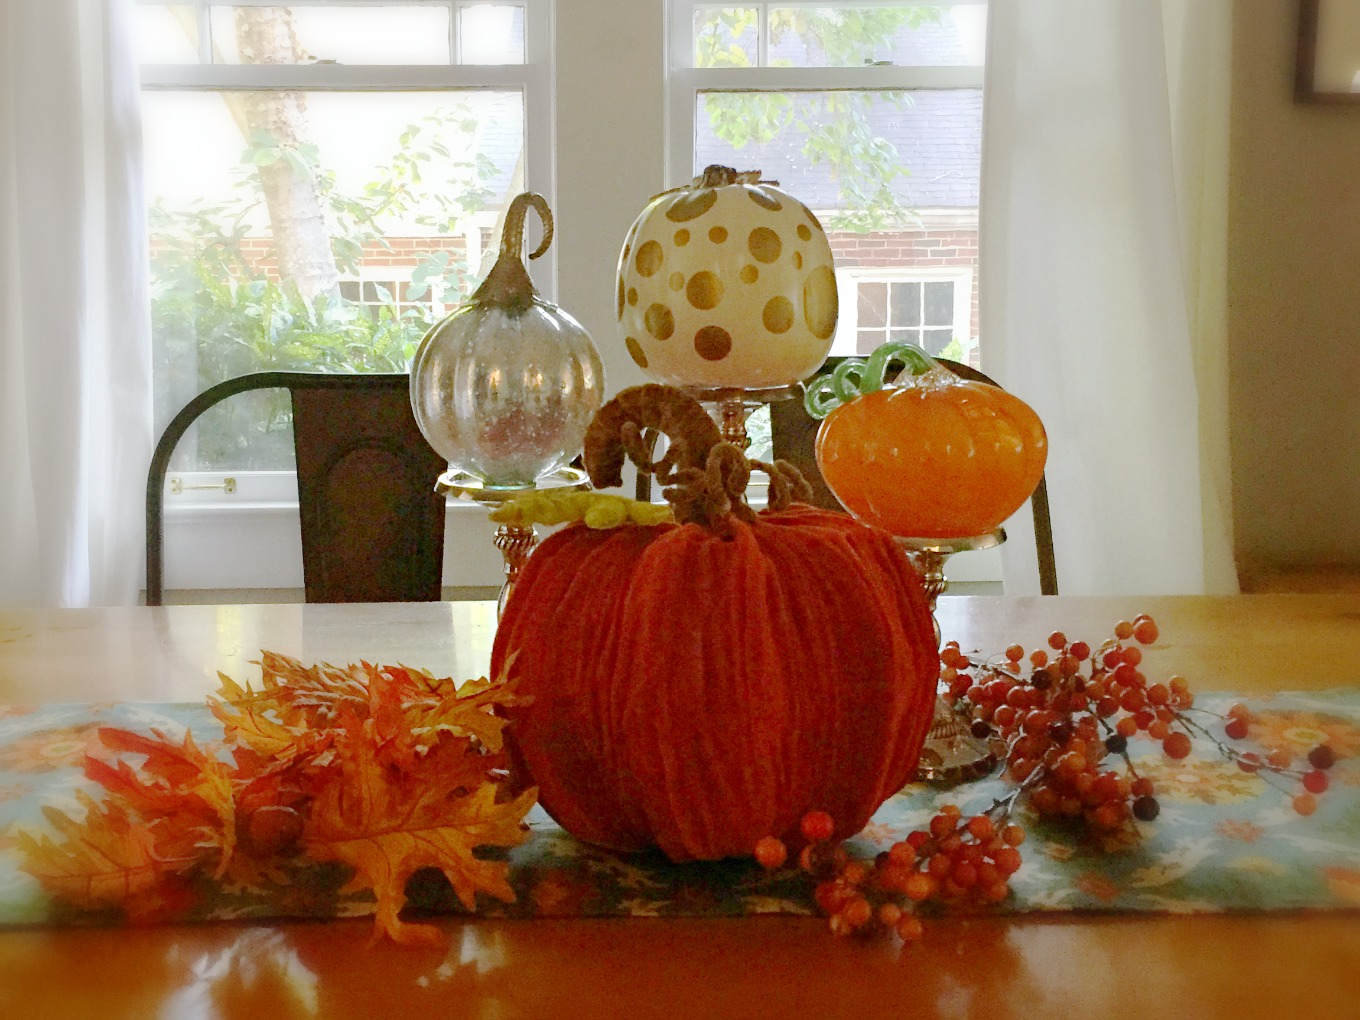 Easy fall centerpiece with leaves pumpkins and candlesticks - thediybungalow.com